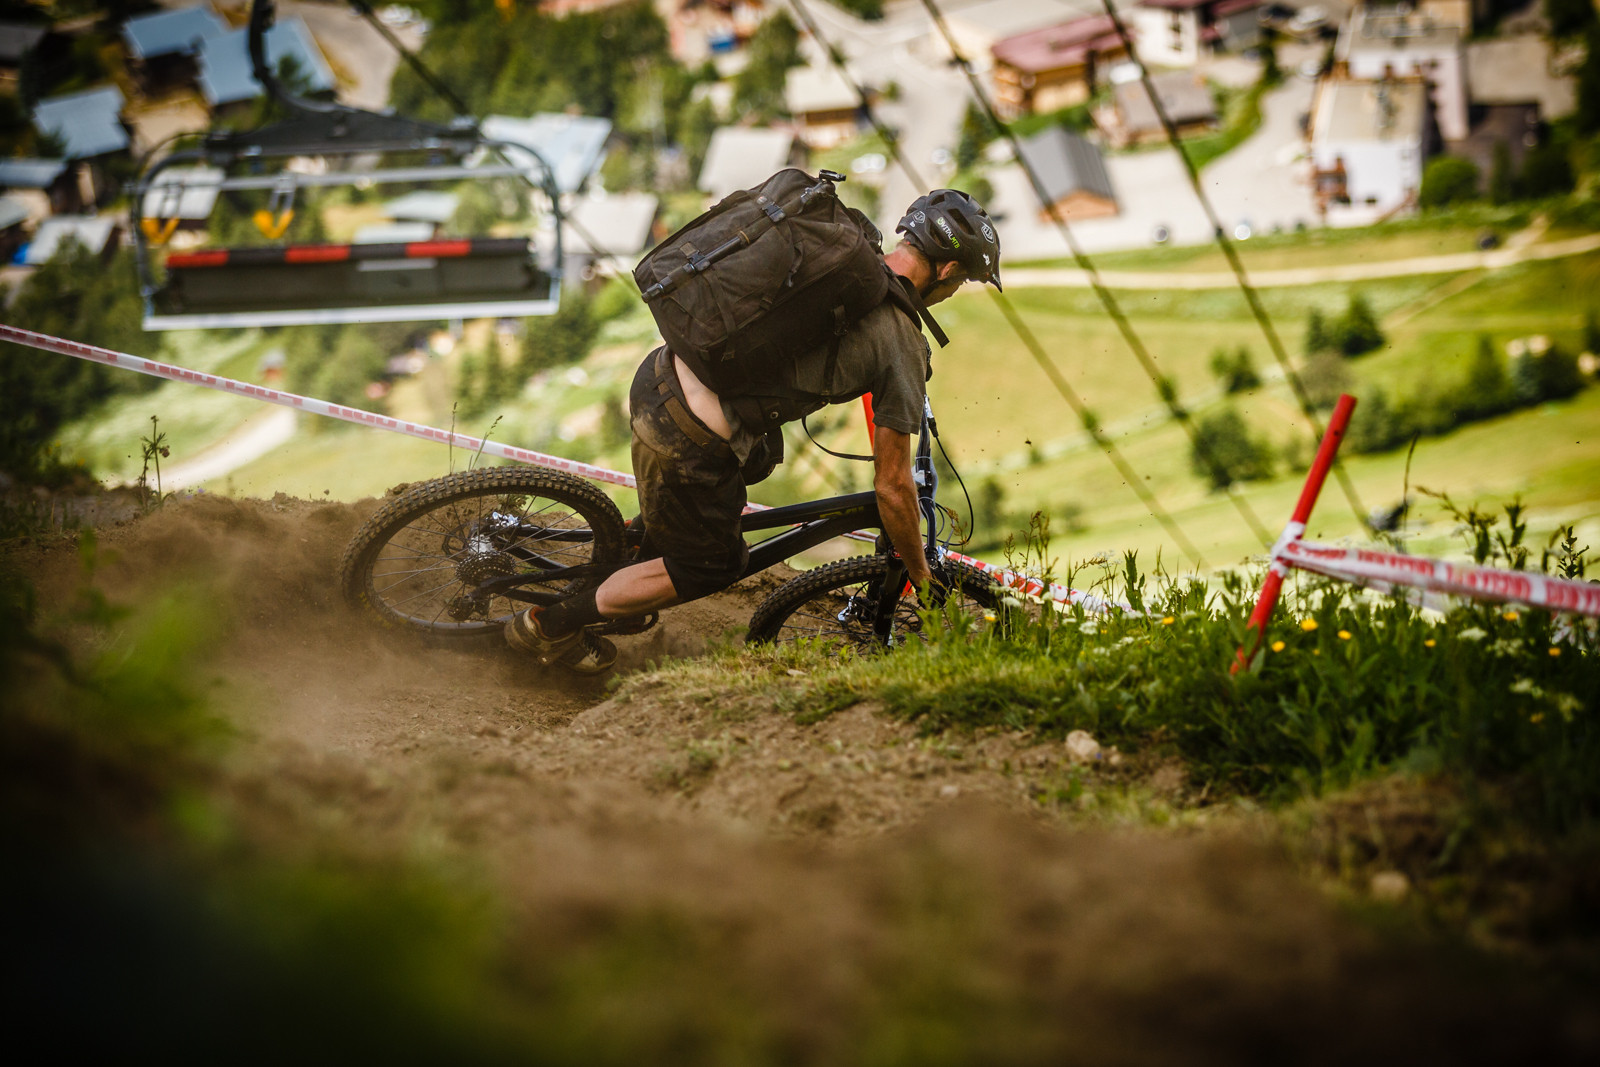 Vital Media DH at Crankworx L2A - Crankworx L2A - Air Downhill Photo Action - Mountain Biking Pictures - Vital MTB